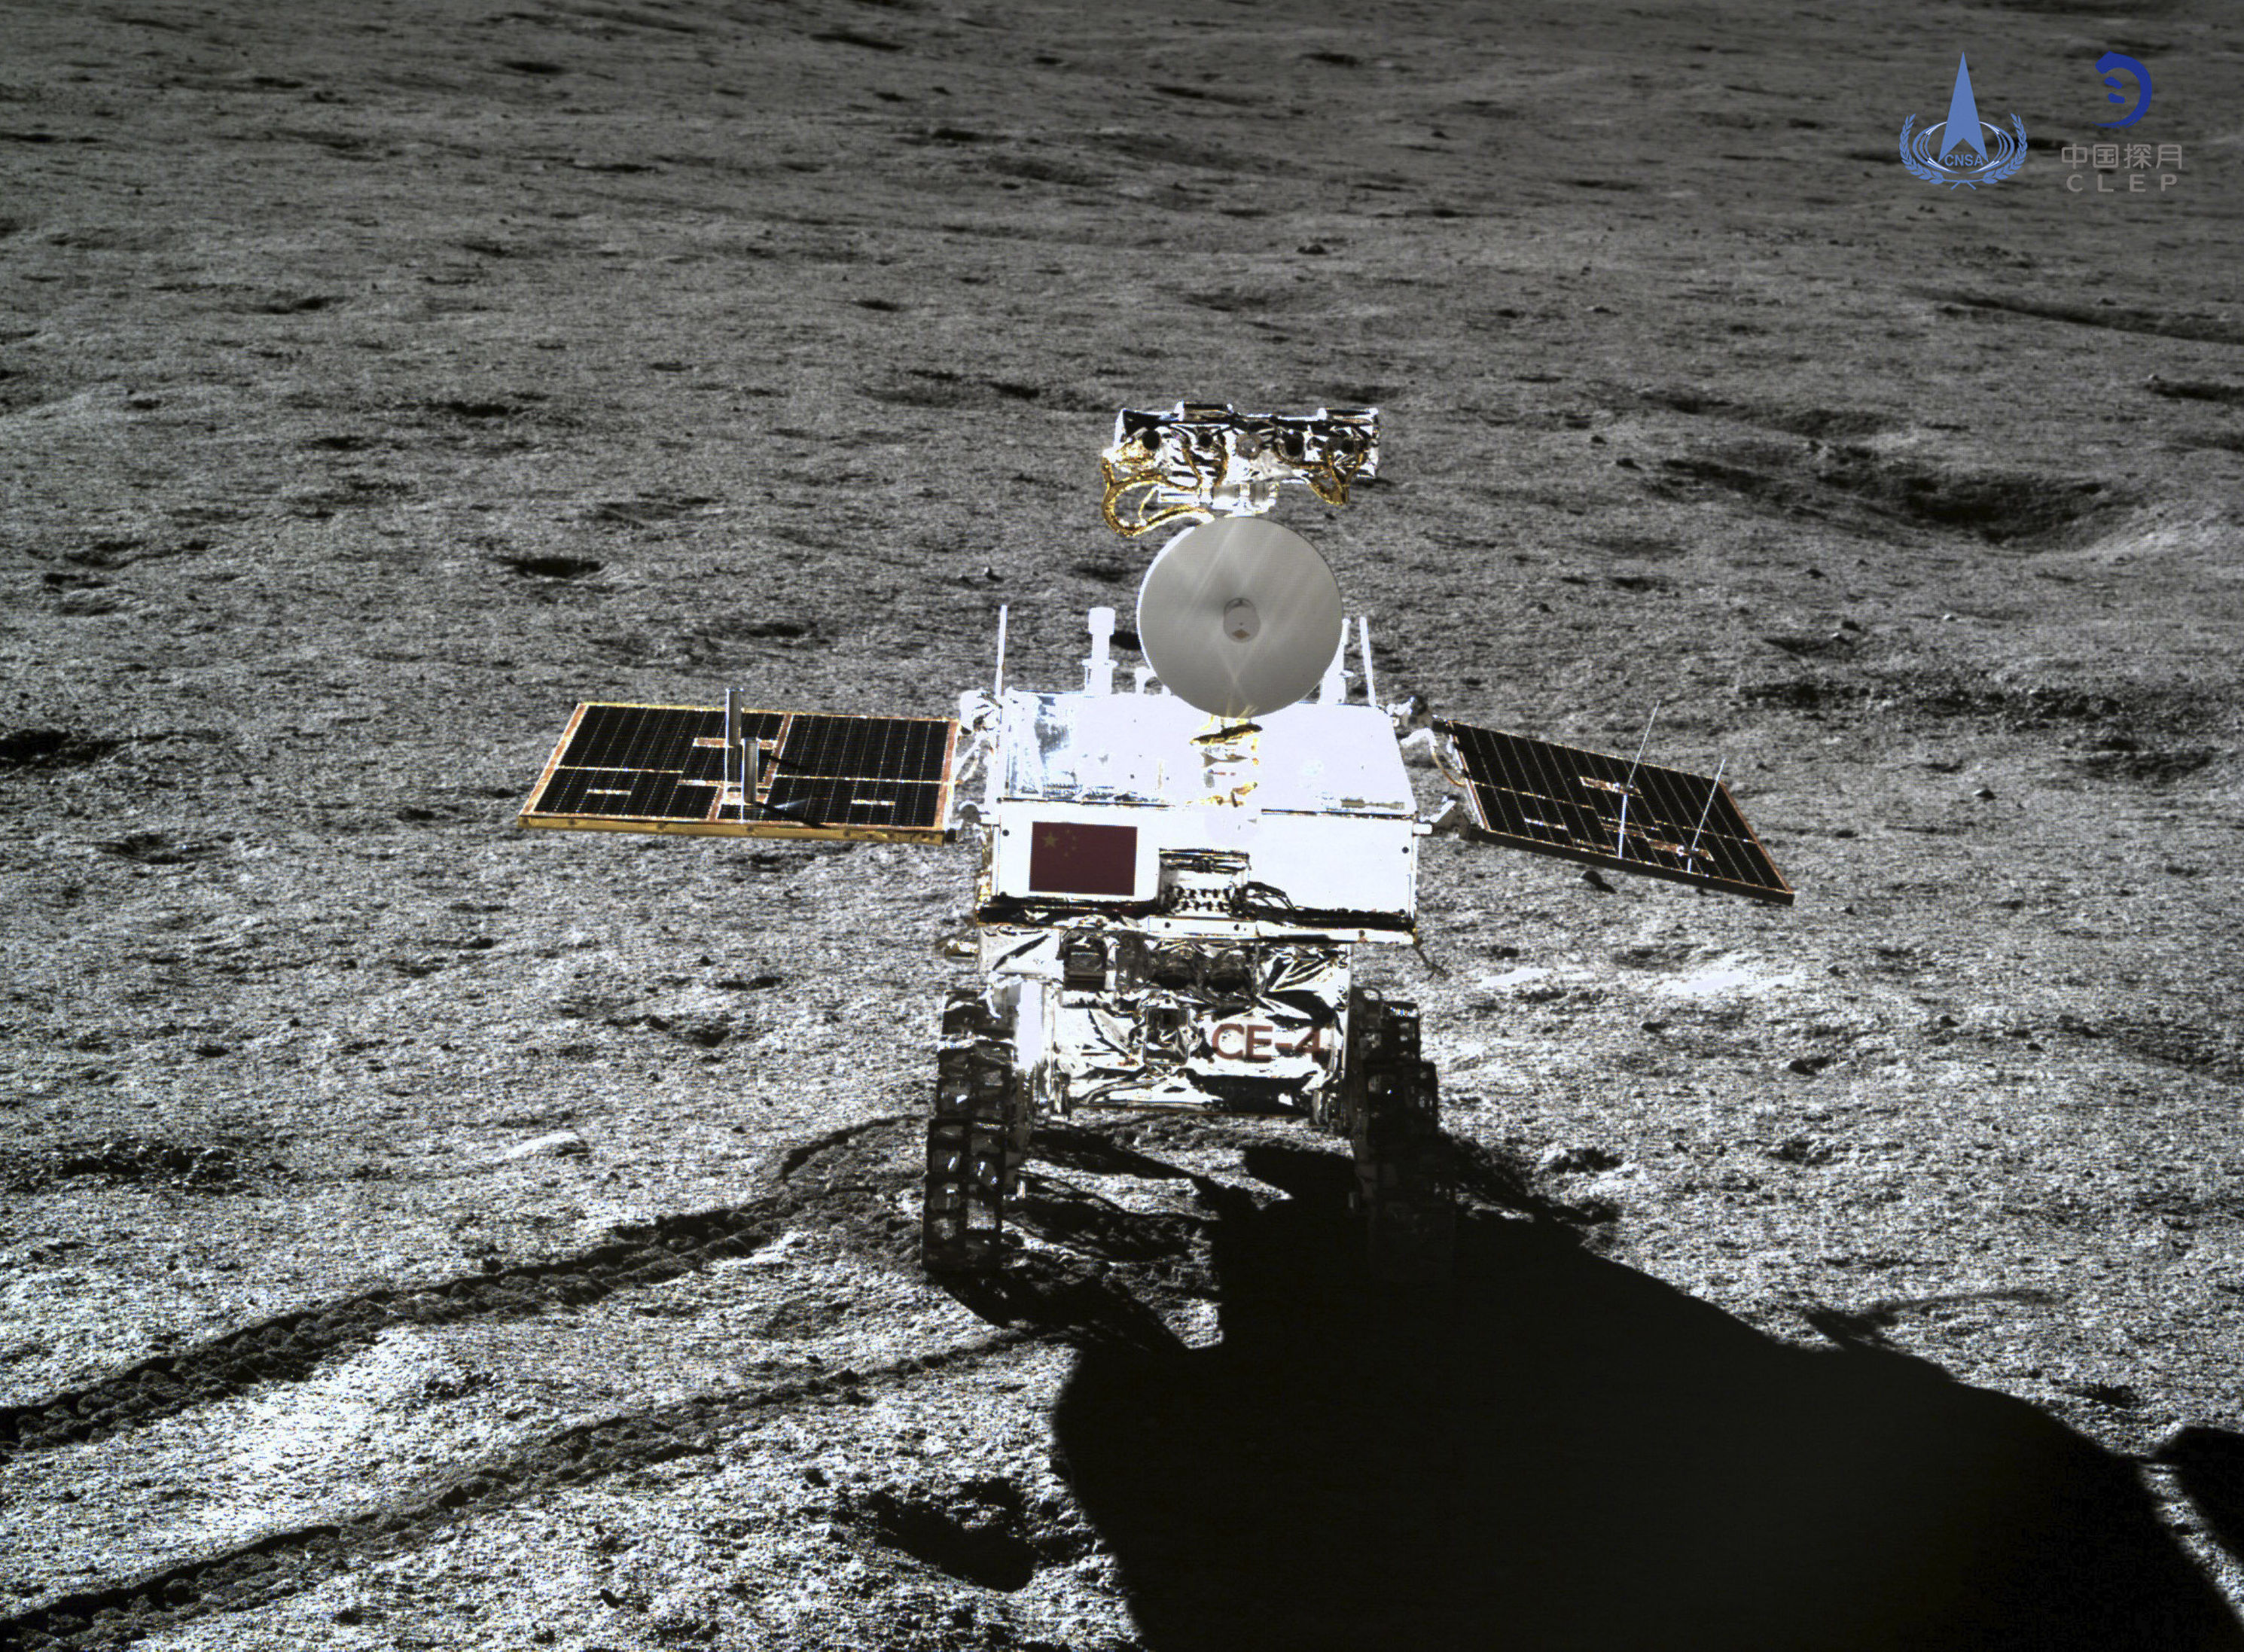 In this photo provided Jan. 12, 2019, by China National Space Administration via Xinhua News Agency, the rover Yutu-2 is seen in a photo taken by the lander of the Chang'e-4 probe on Jan. 11, 2019